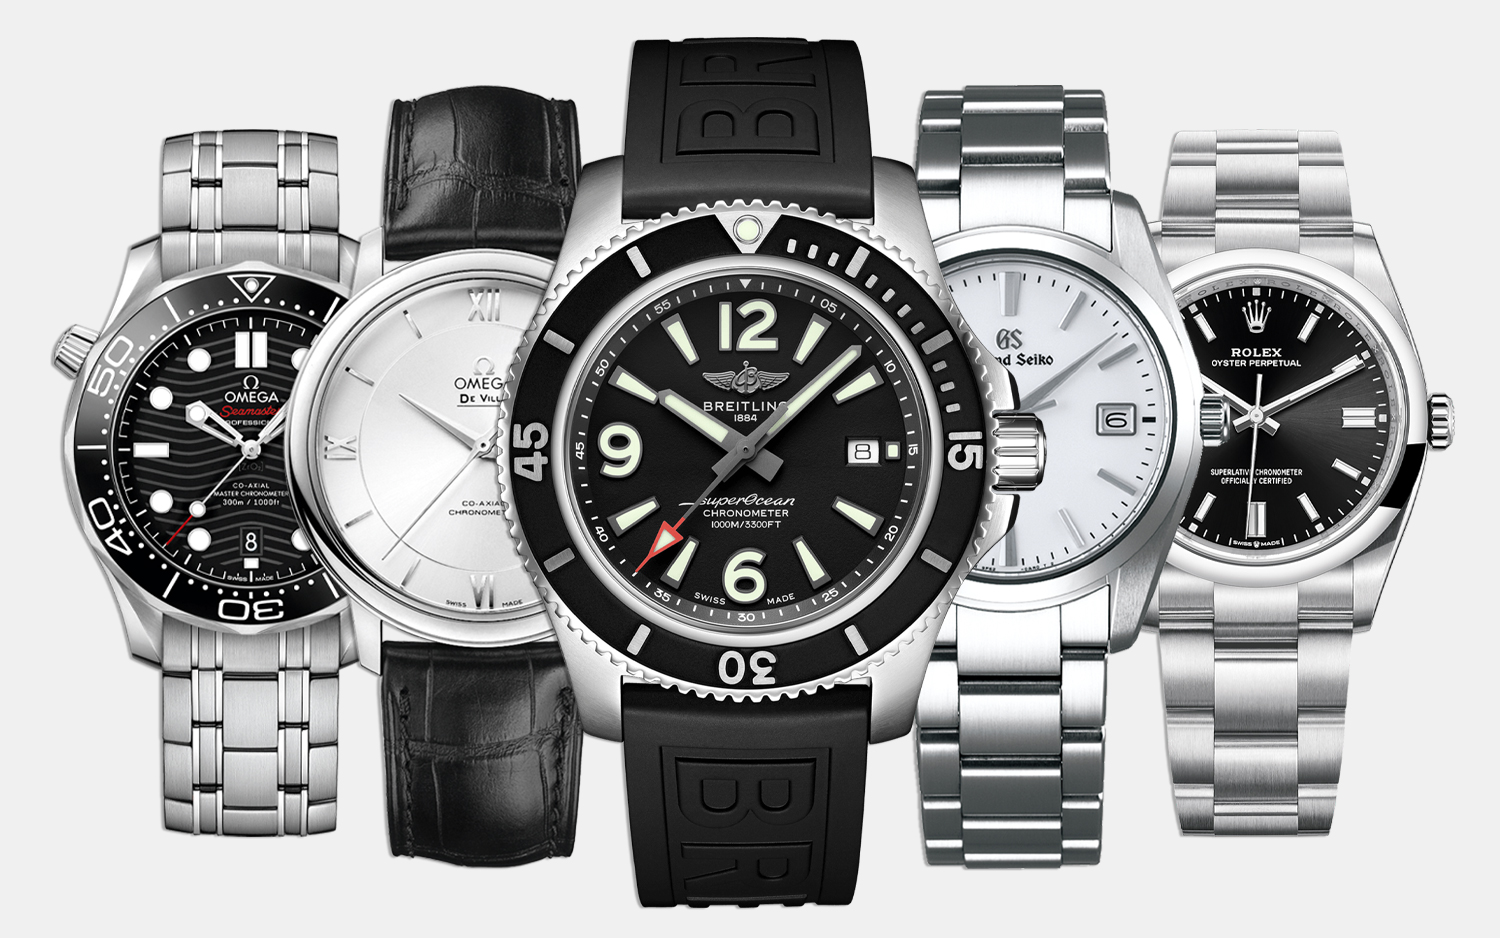 The 10 Best Entry Level Luxury Watches